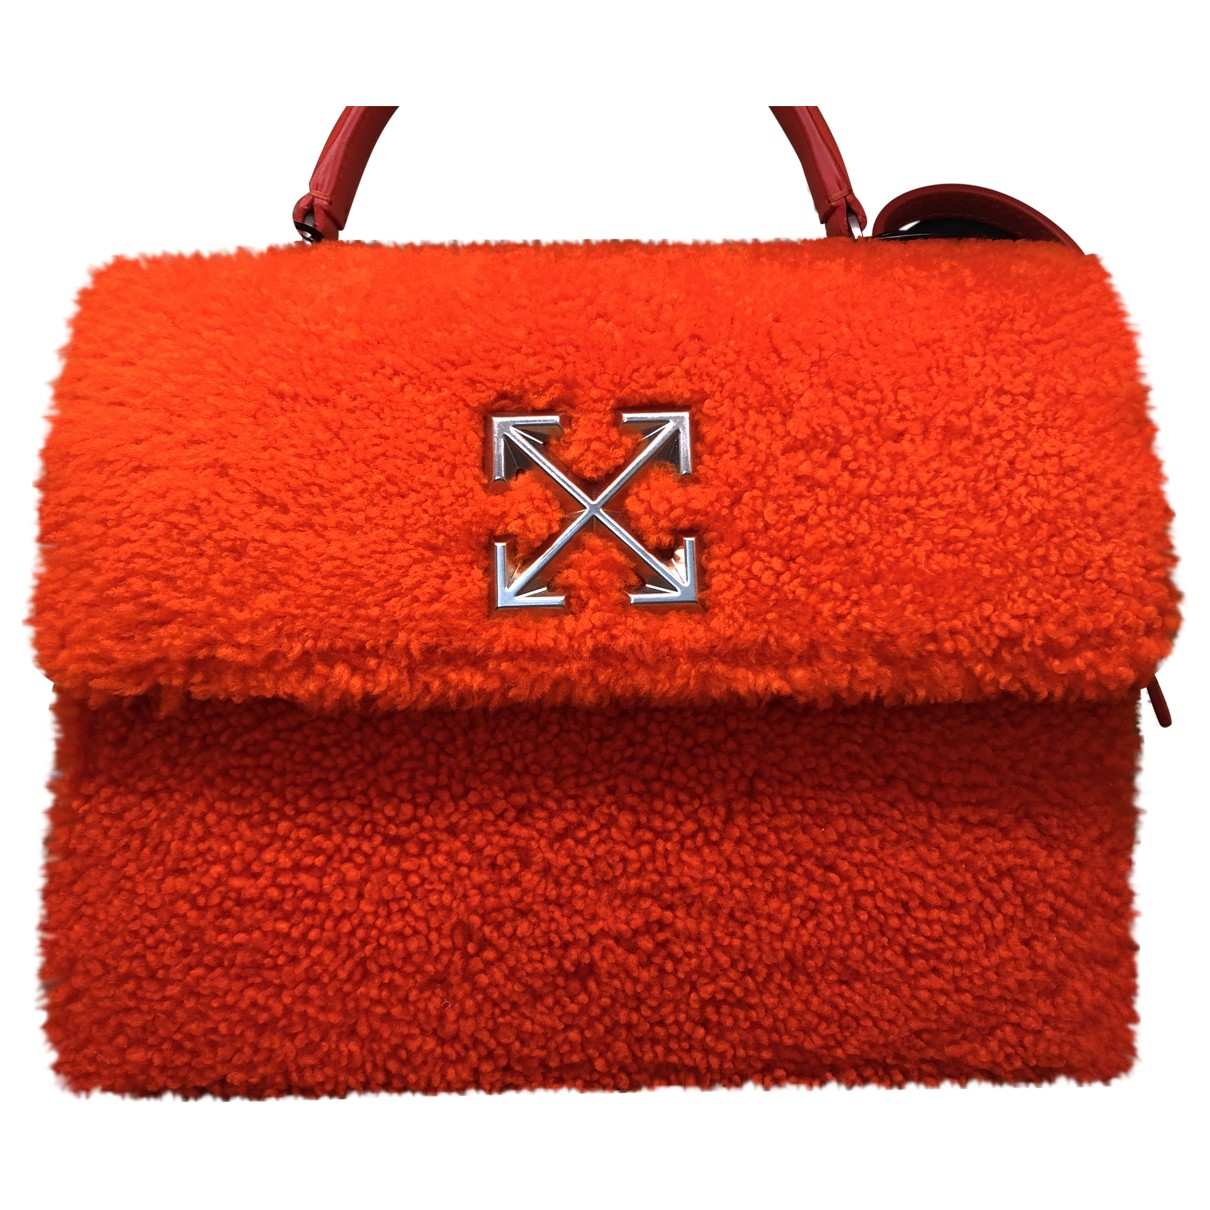 Off-white \N Orange Leather handbag for Women \N